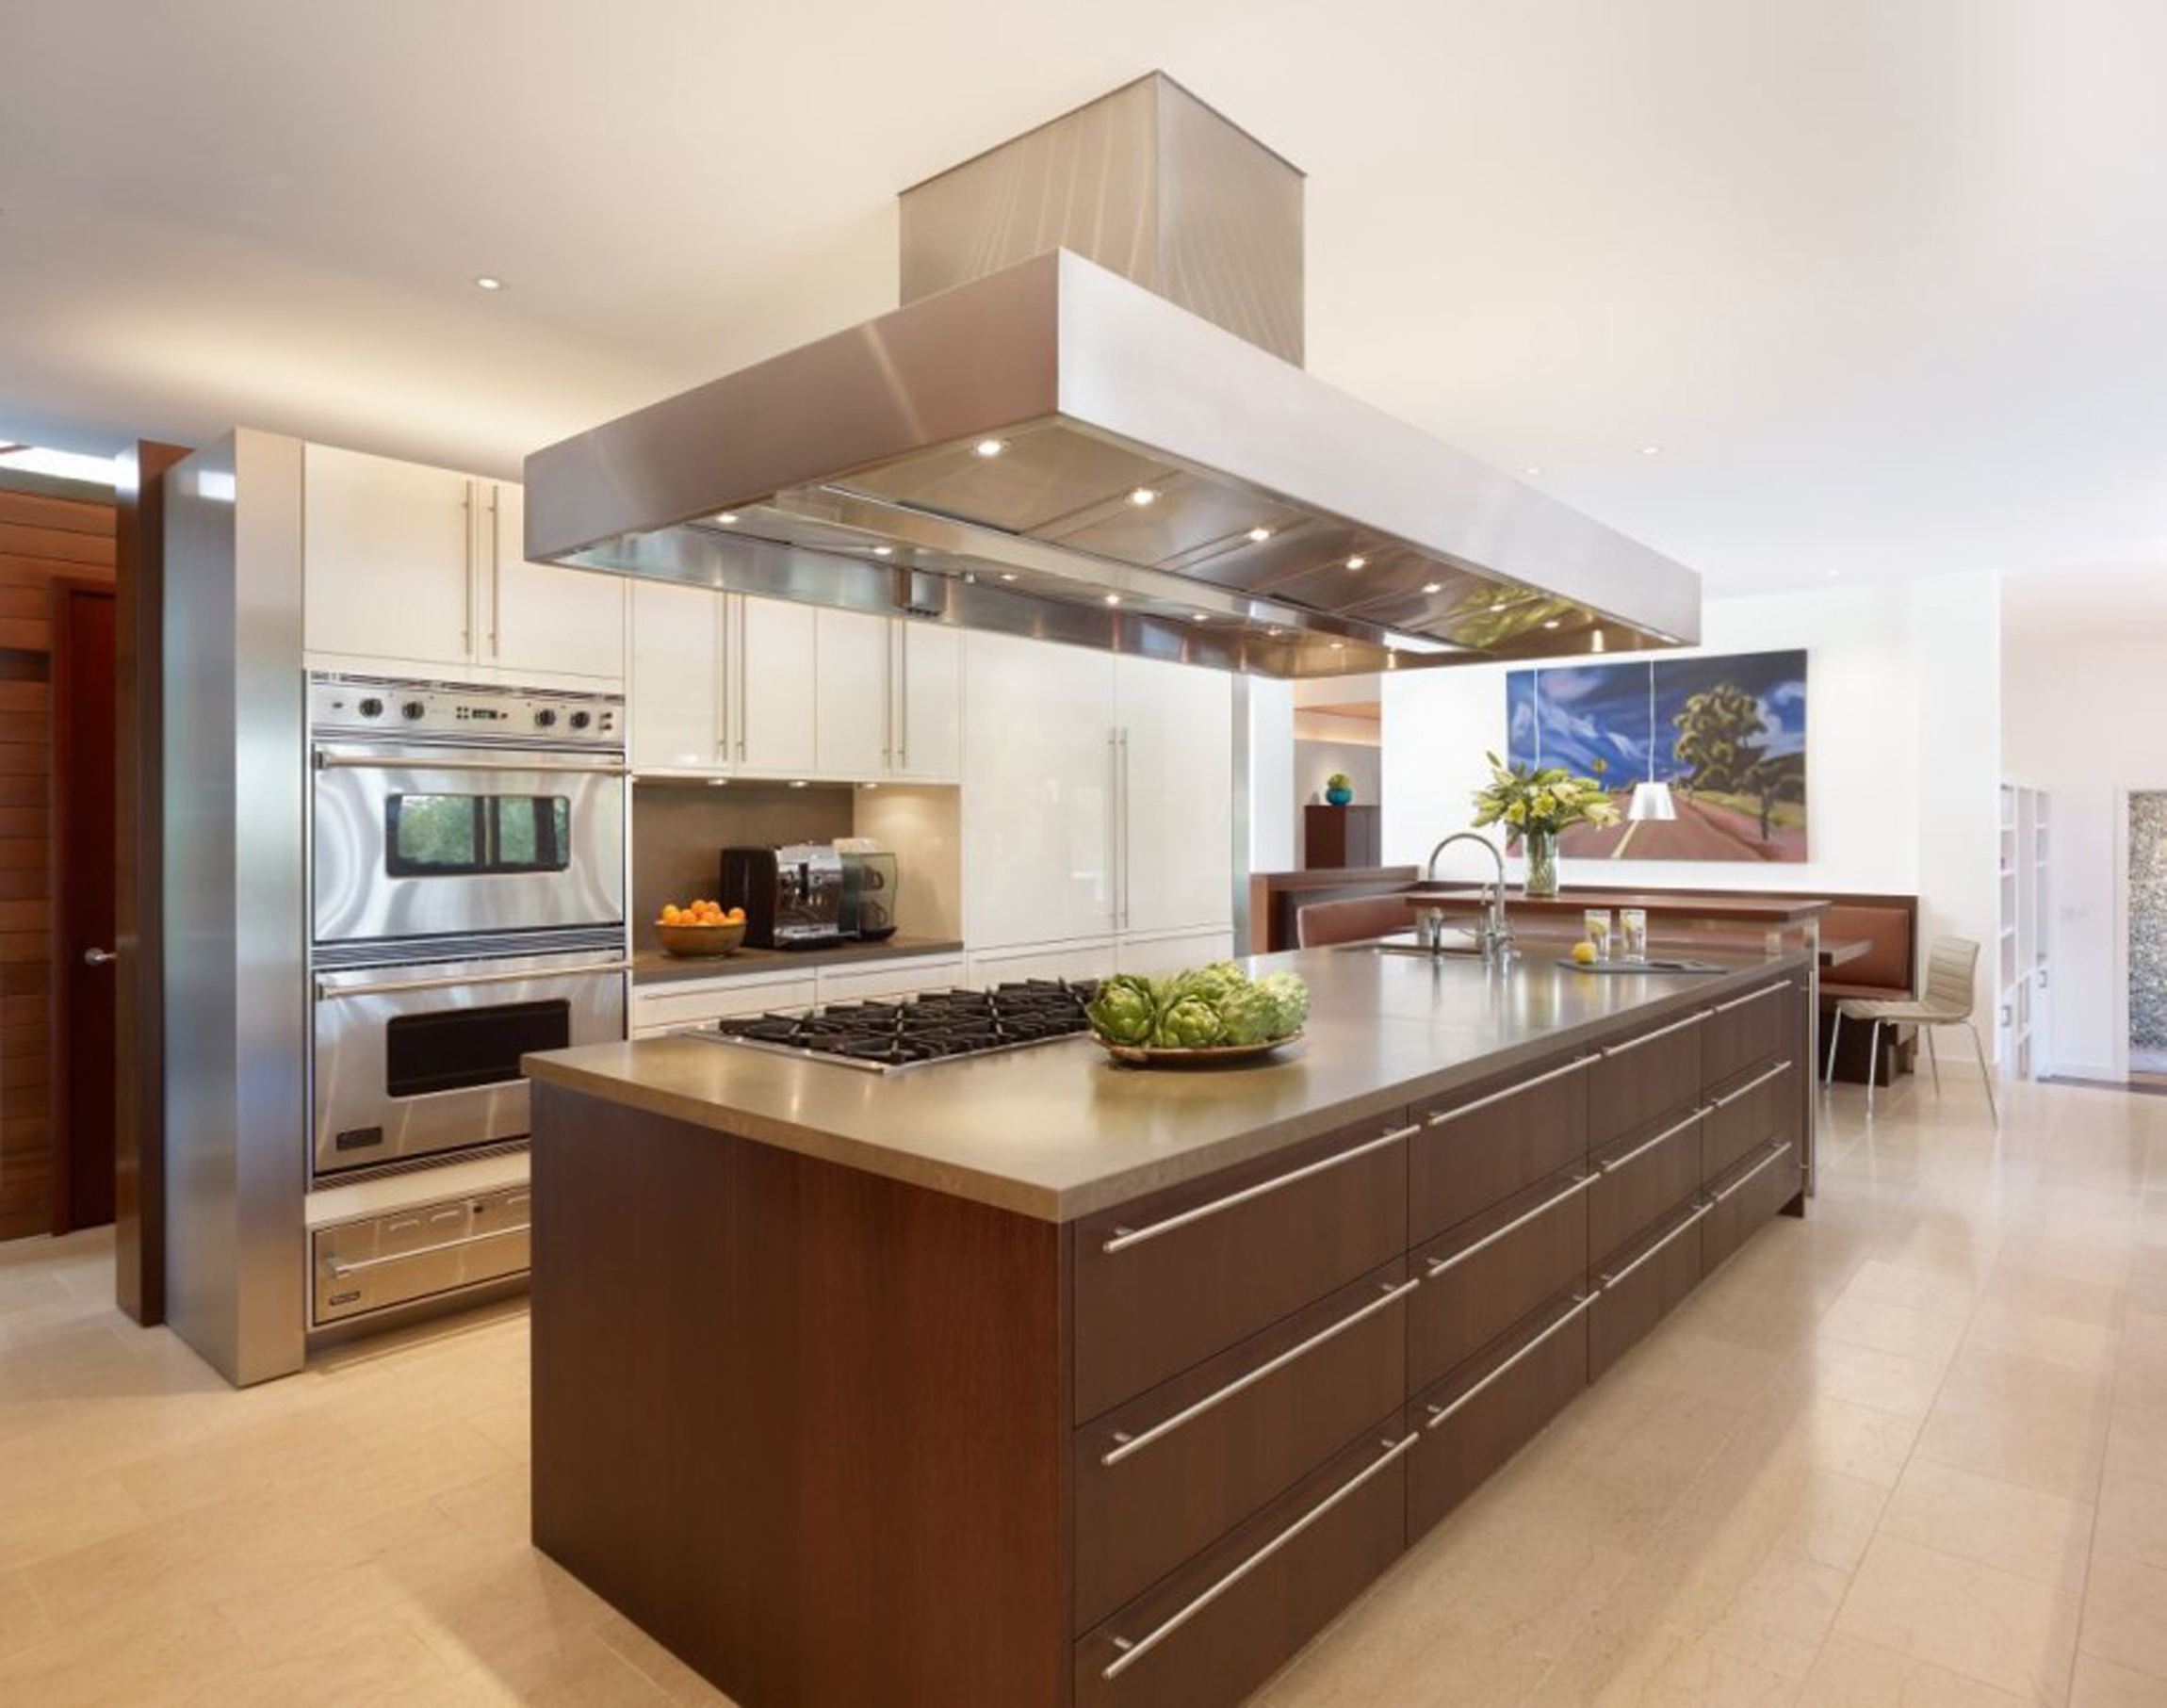 Kitchen Design Island With Aspirator Awesome Decorations With Cute Plan (View 1 of 31)